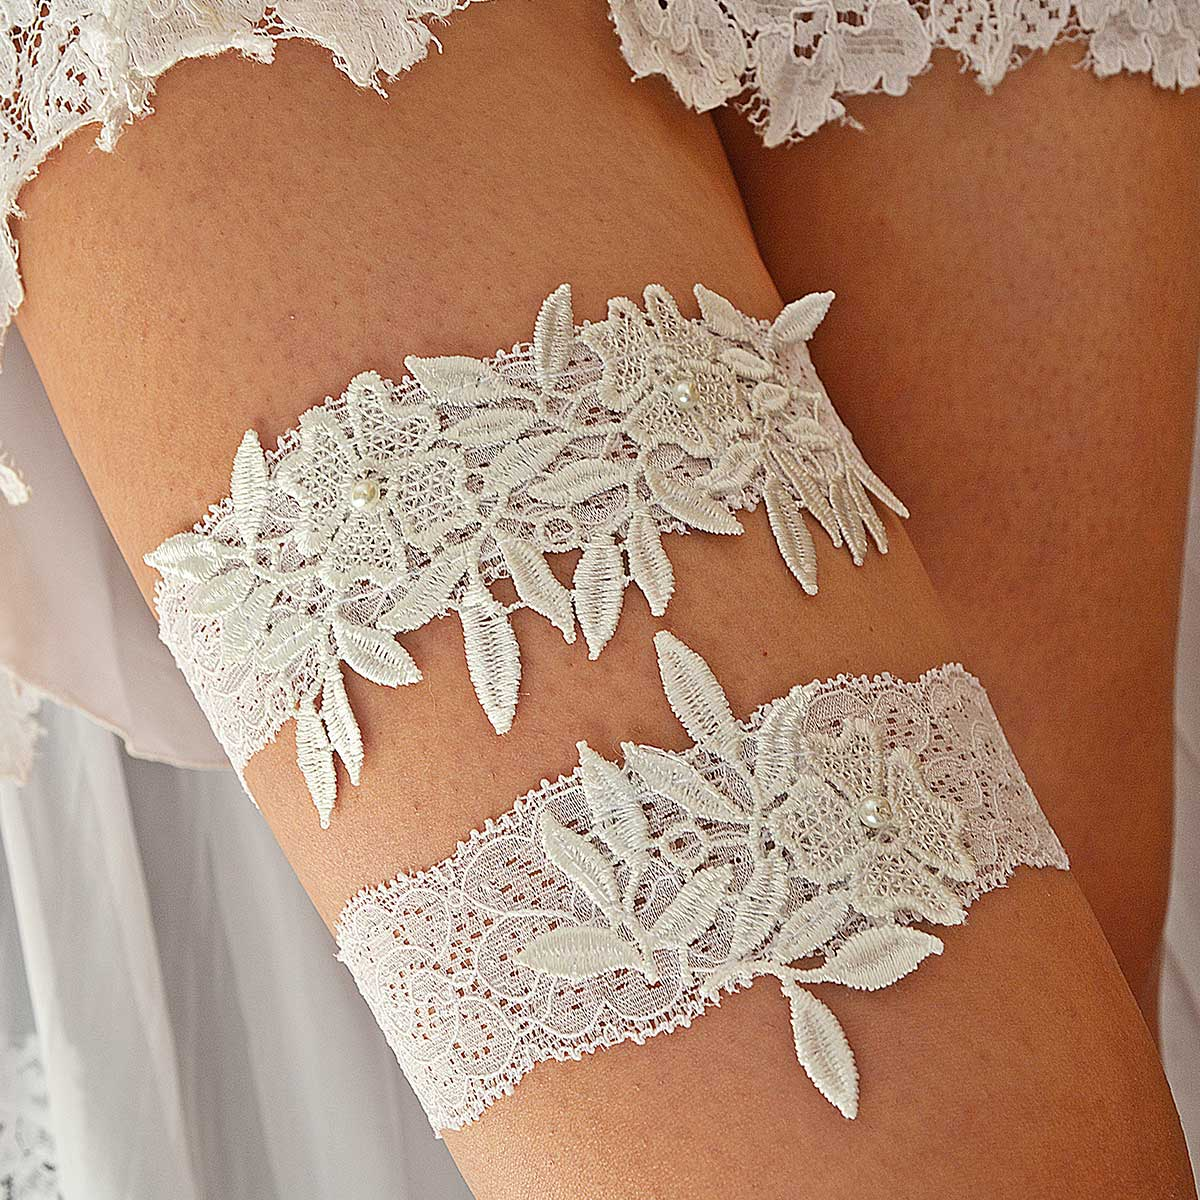 Handmade White Bridal Garter With Pearls & Flower Appliques - Wedding Garter - SuzannaM Designs